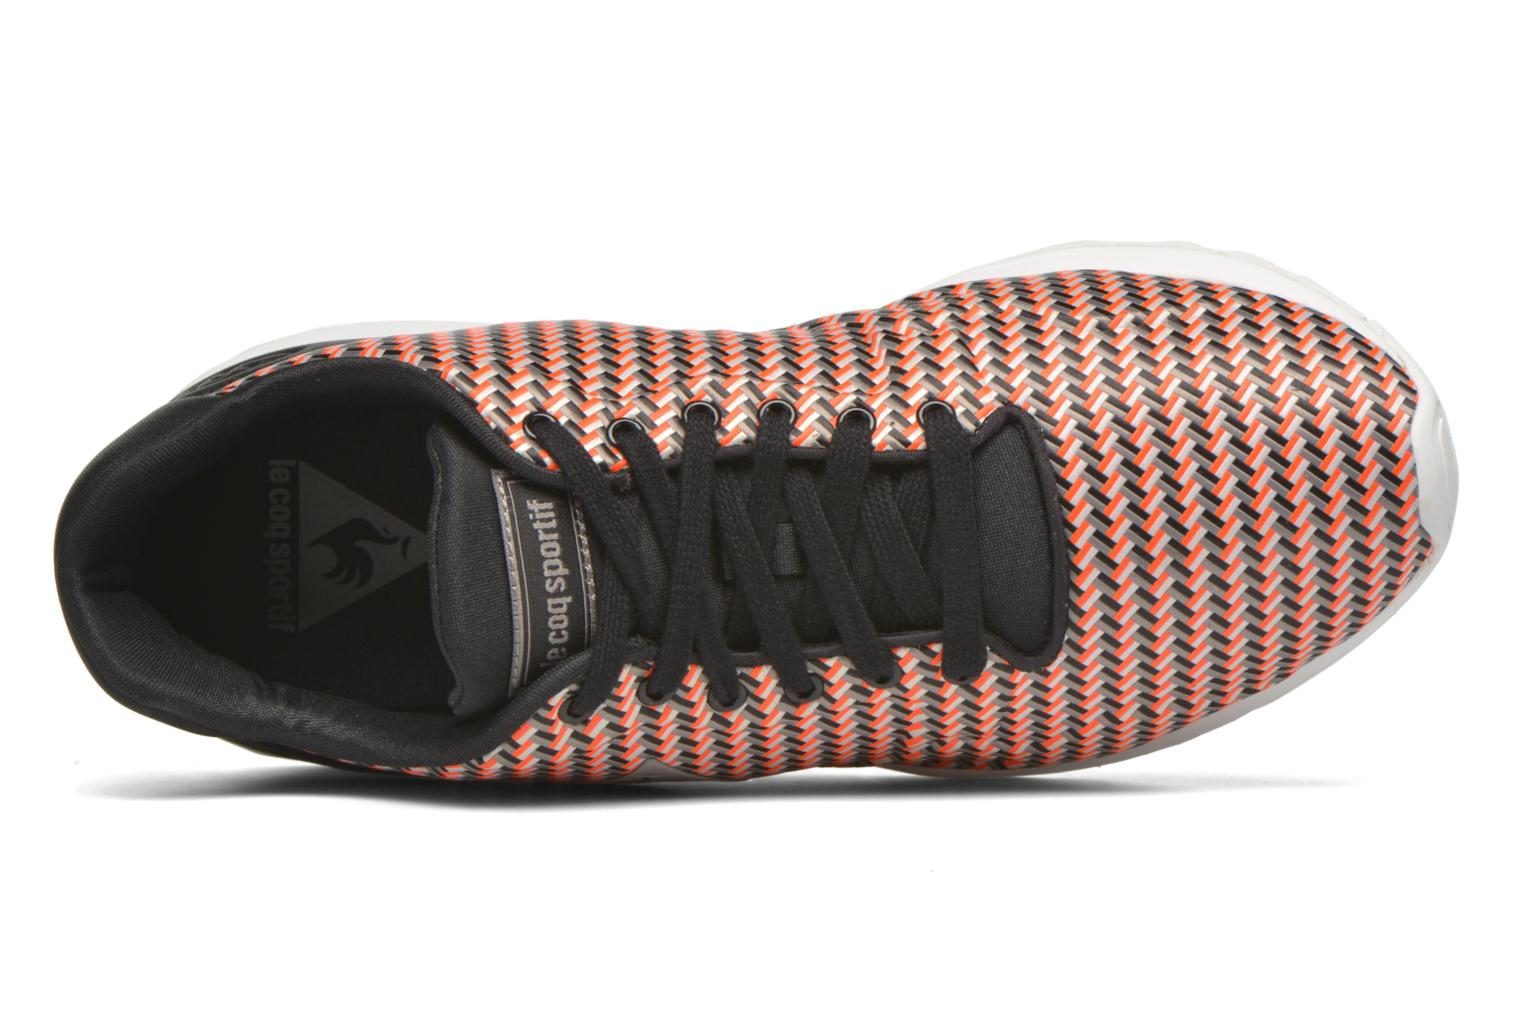 Black/Fluoro Red Le Coq Sportif LCS R950 Geo Jacquard (Rouge)